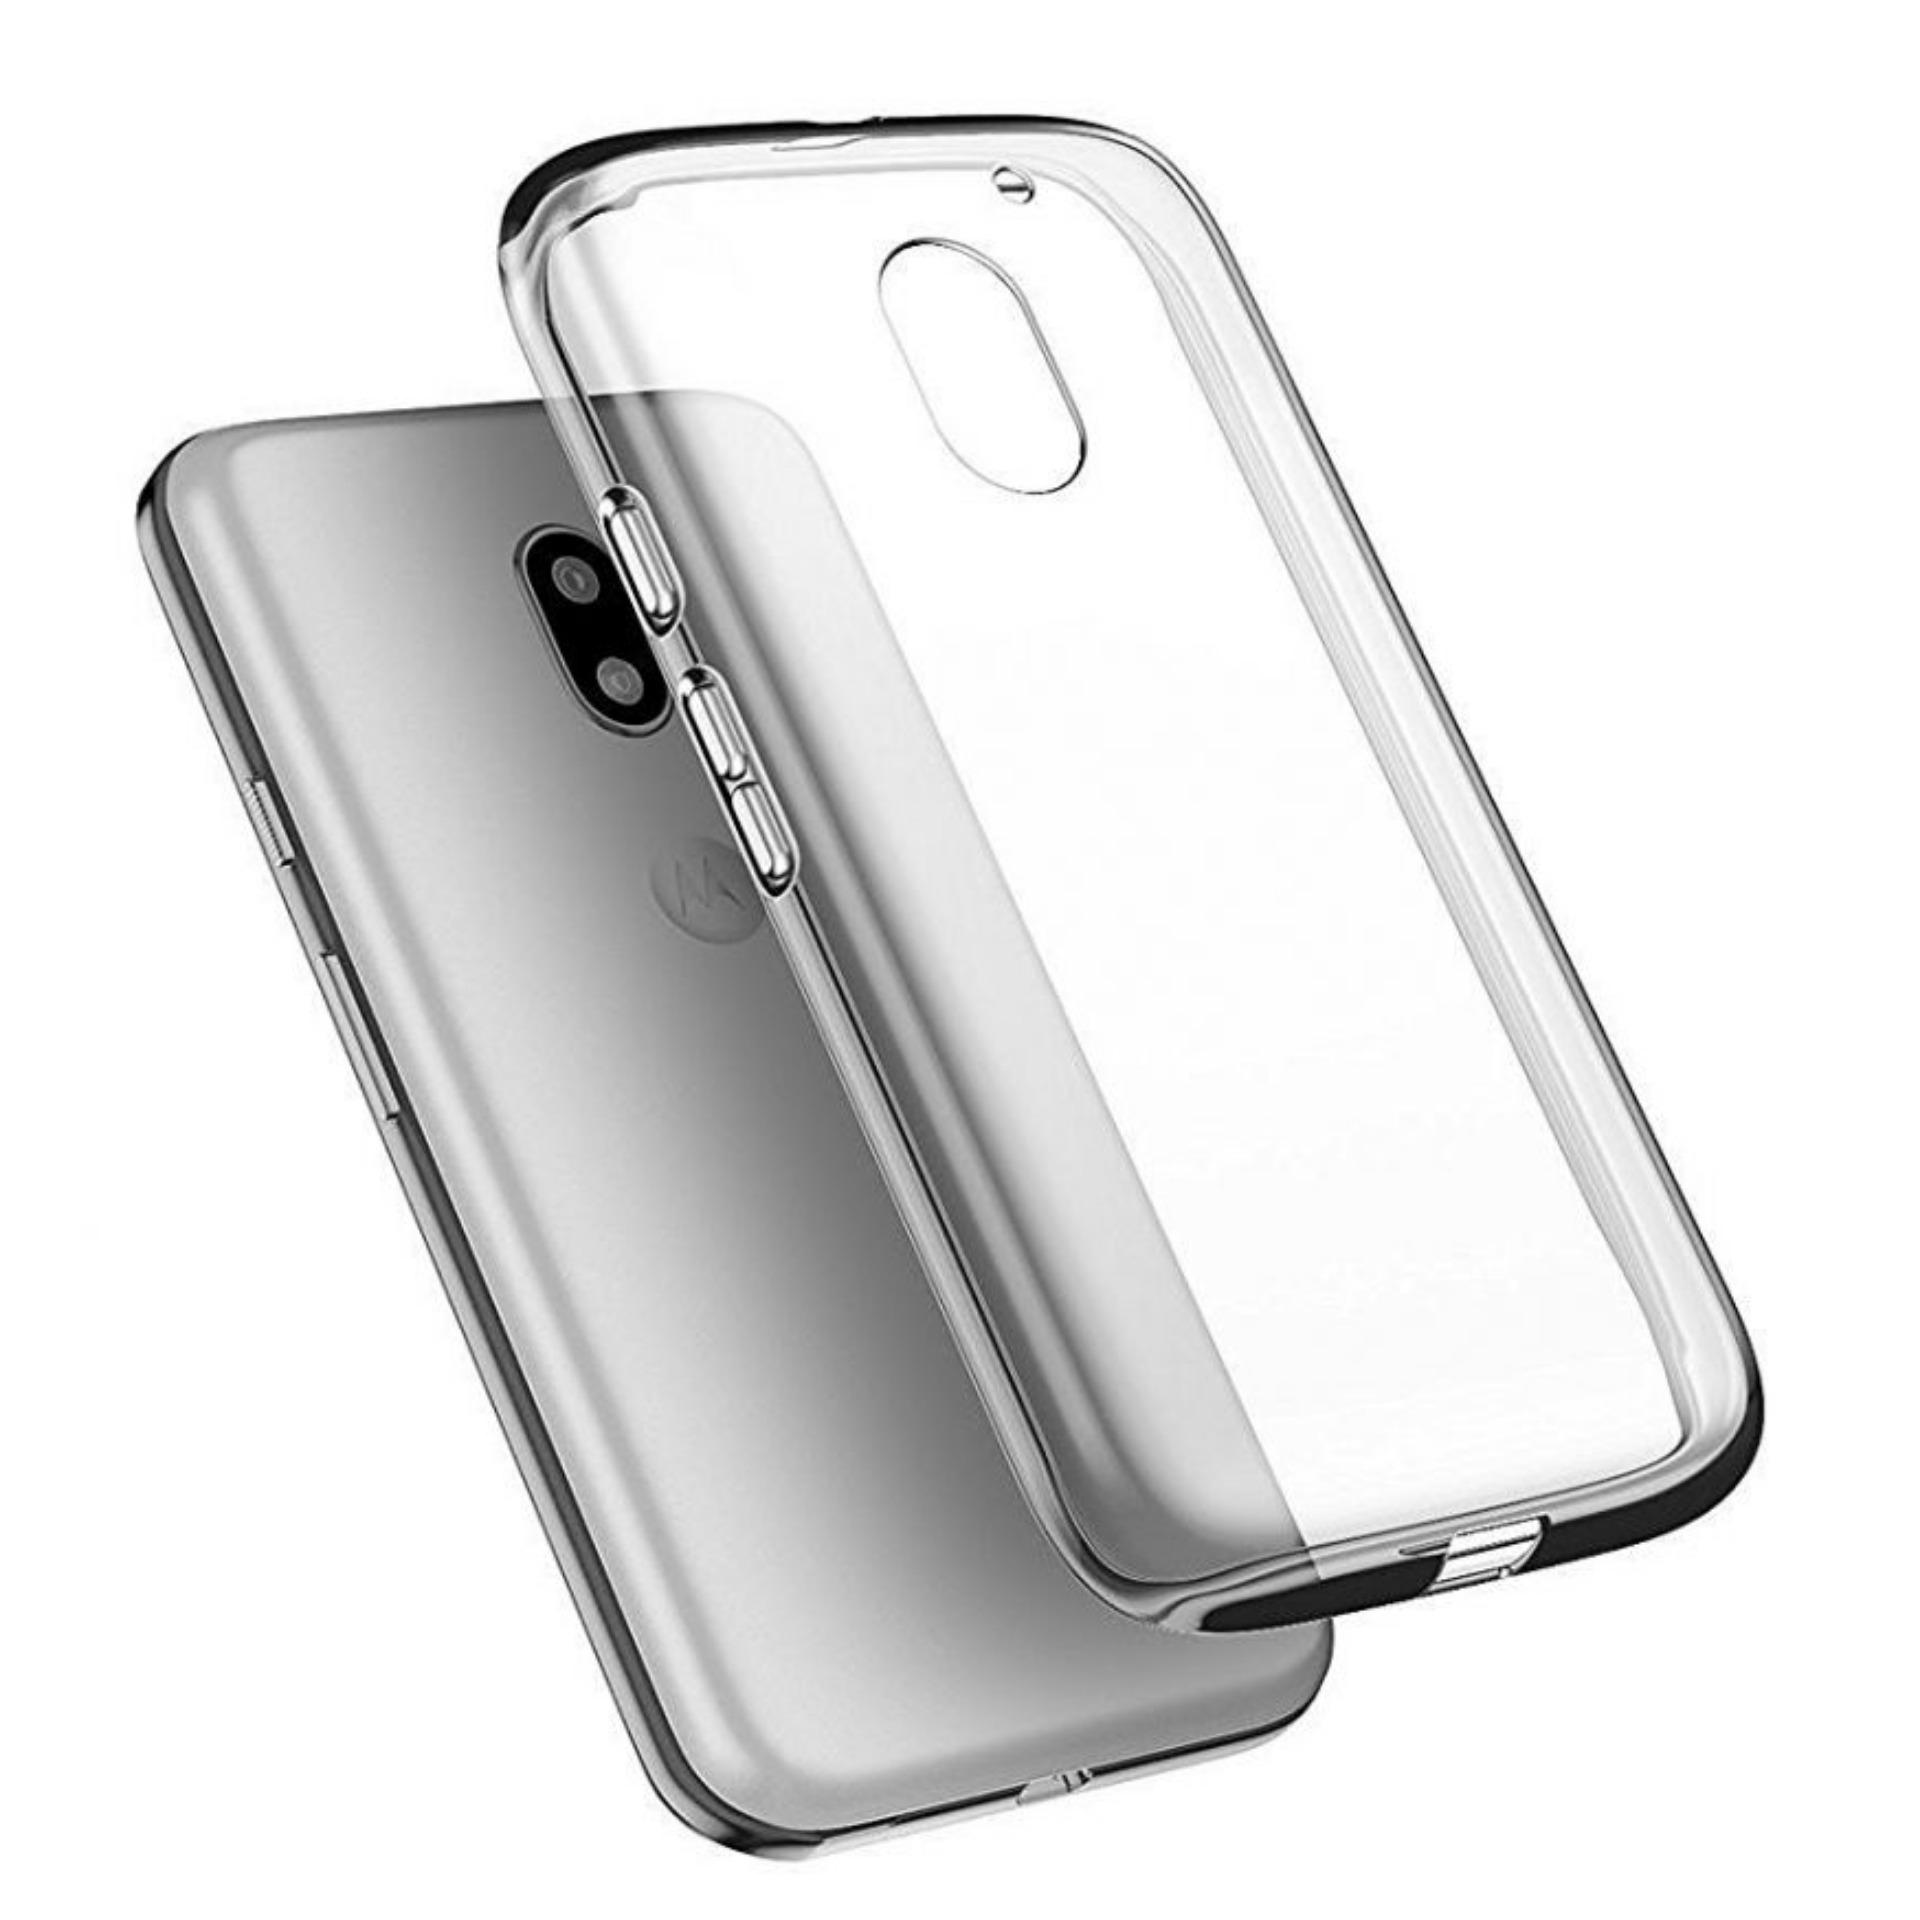 Bendoel Aircase for Motorola Moto E3 Power | Softcase Ultrathin Anti Crash - Putih Transparan